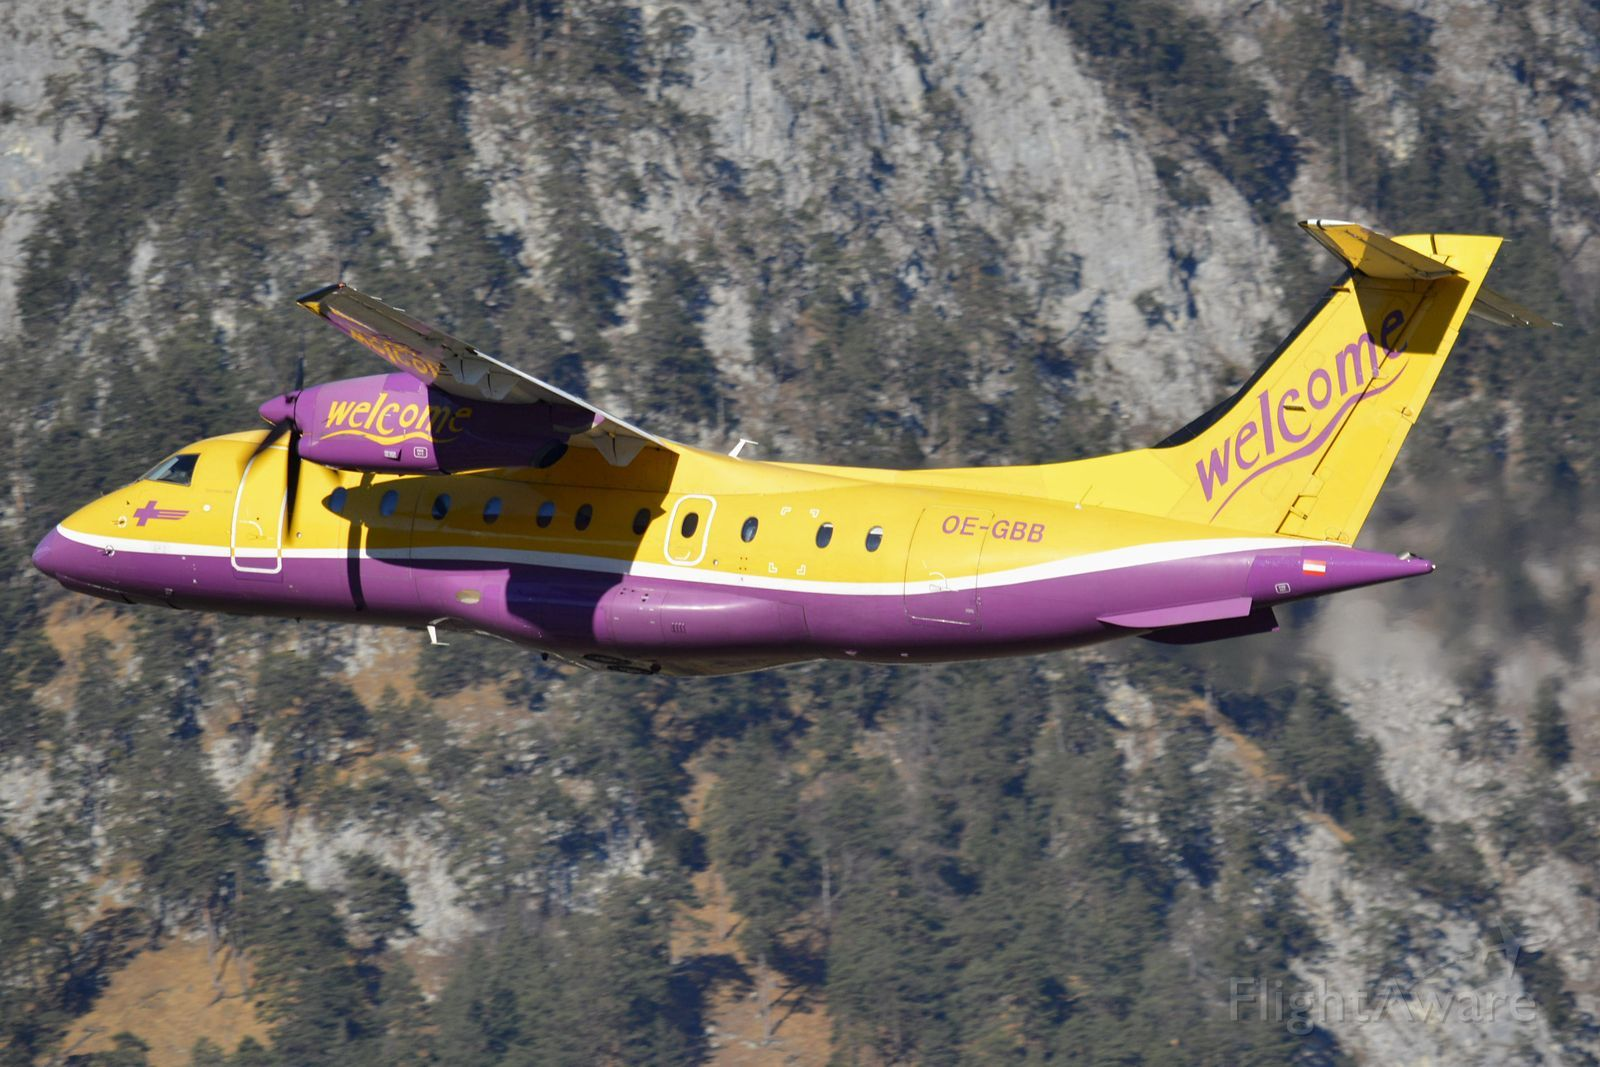 Photo of TYW Fairchild Dornier 328 (OEGBB) FlightAware